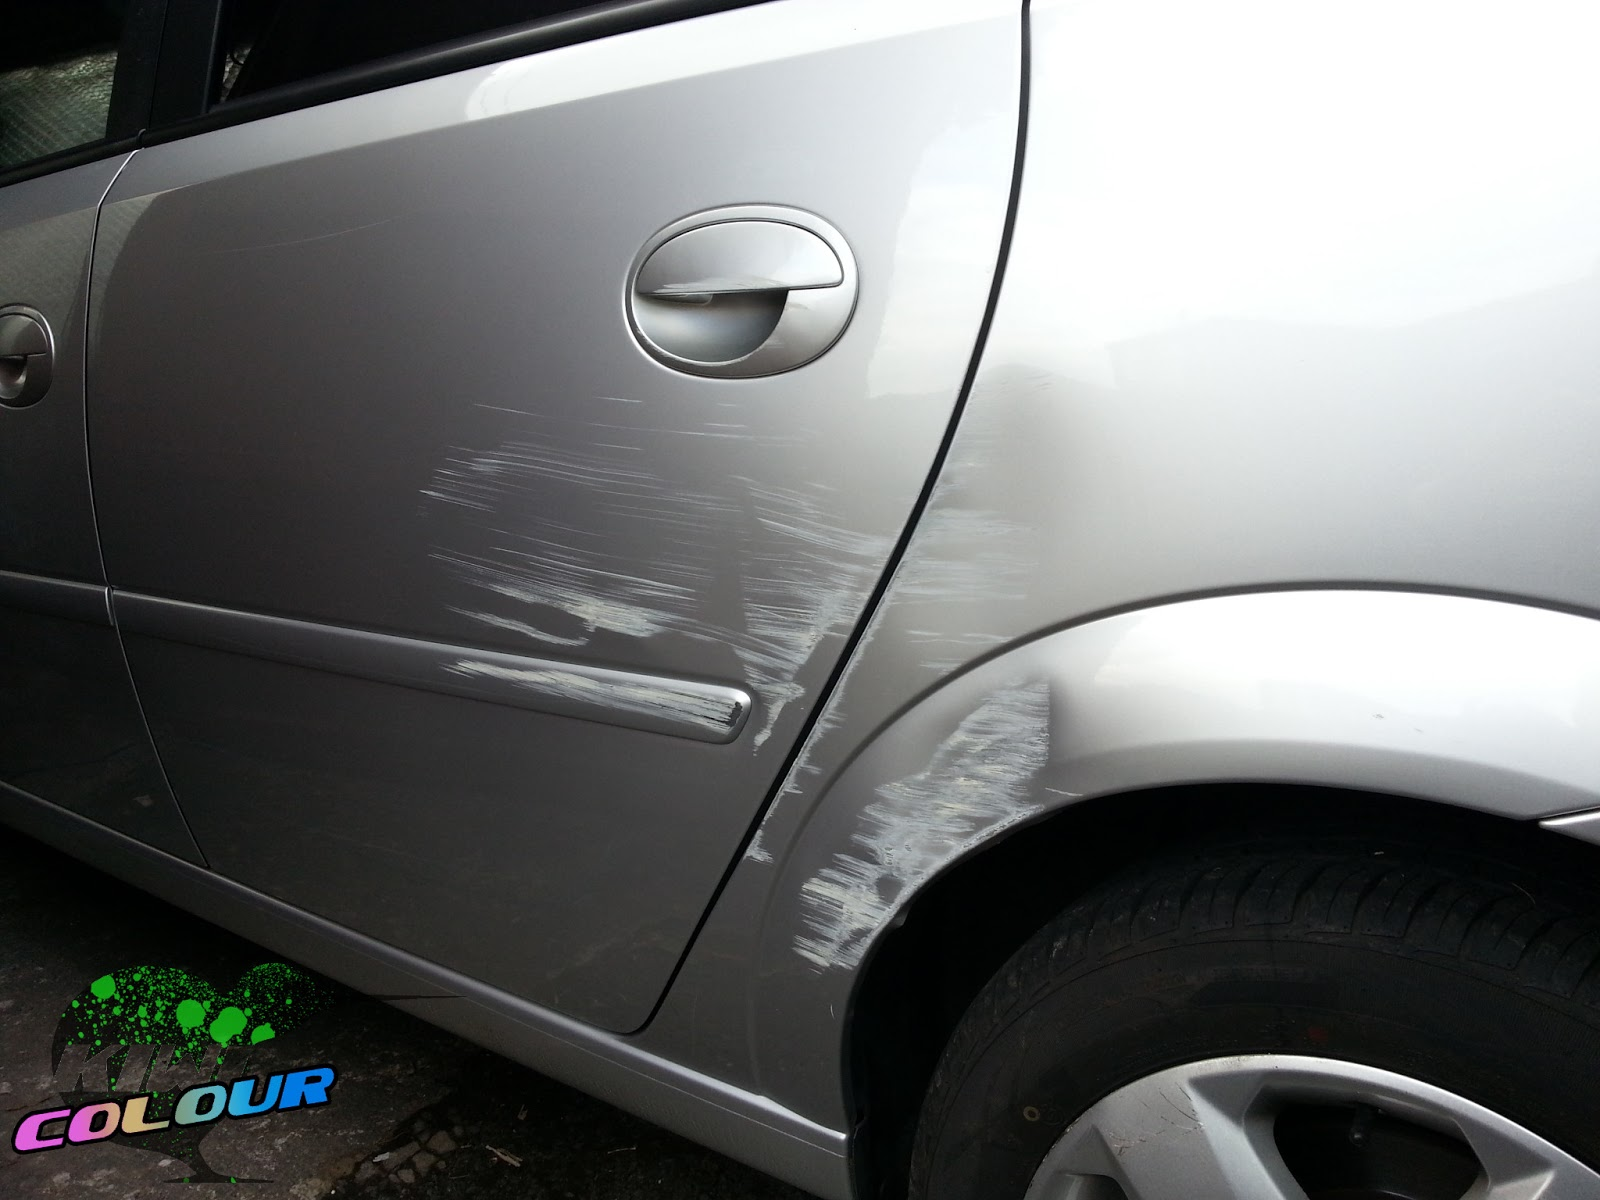 vauxhall zafira dent and scratch damage repaired at the customers location  in Harrogate today